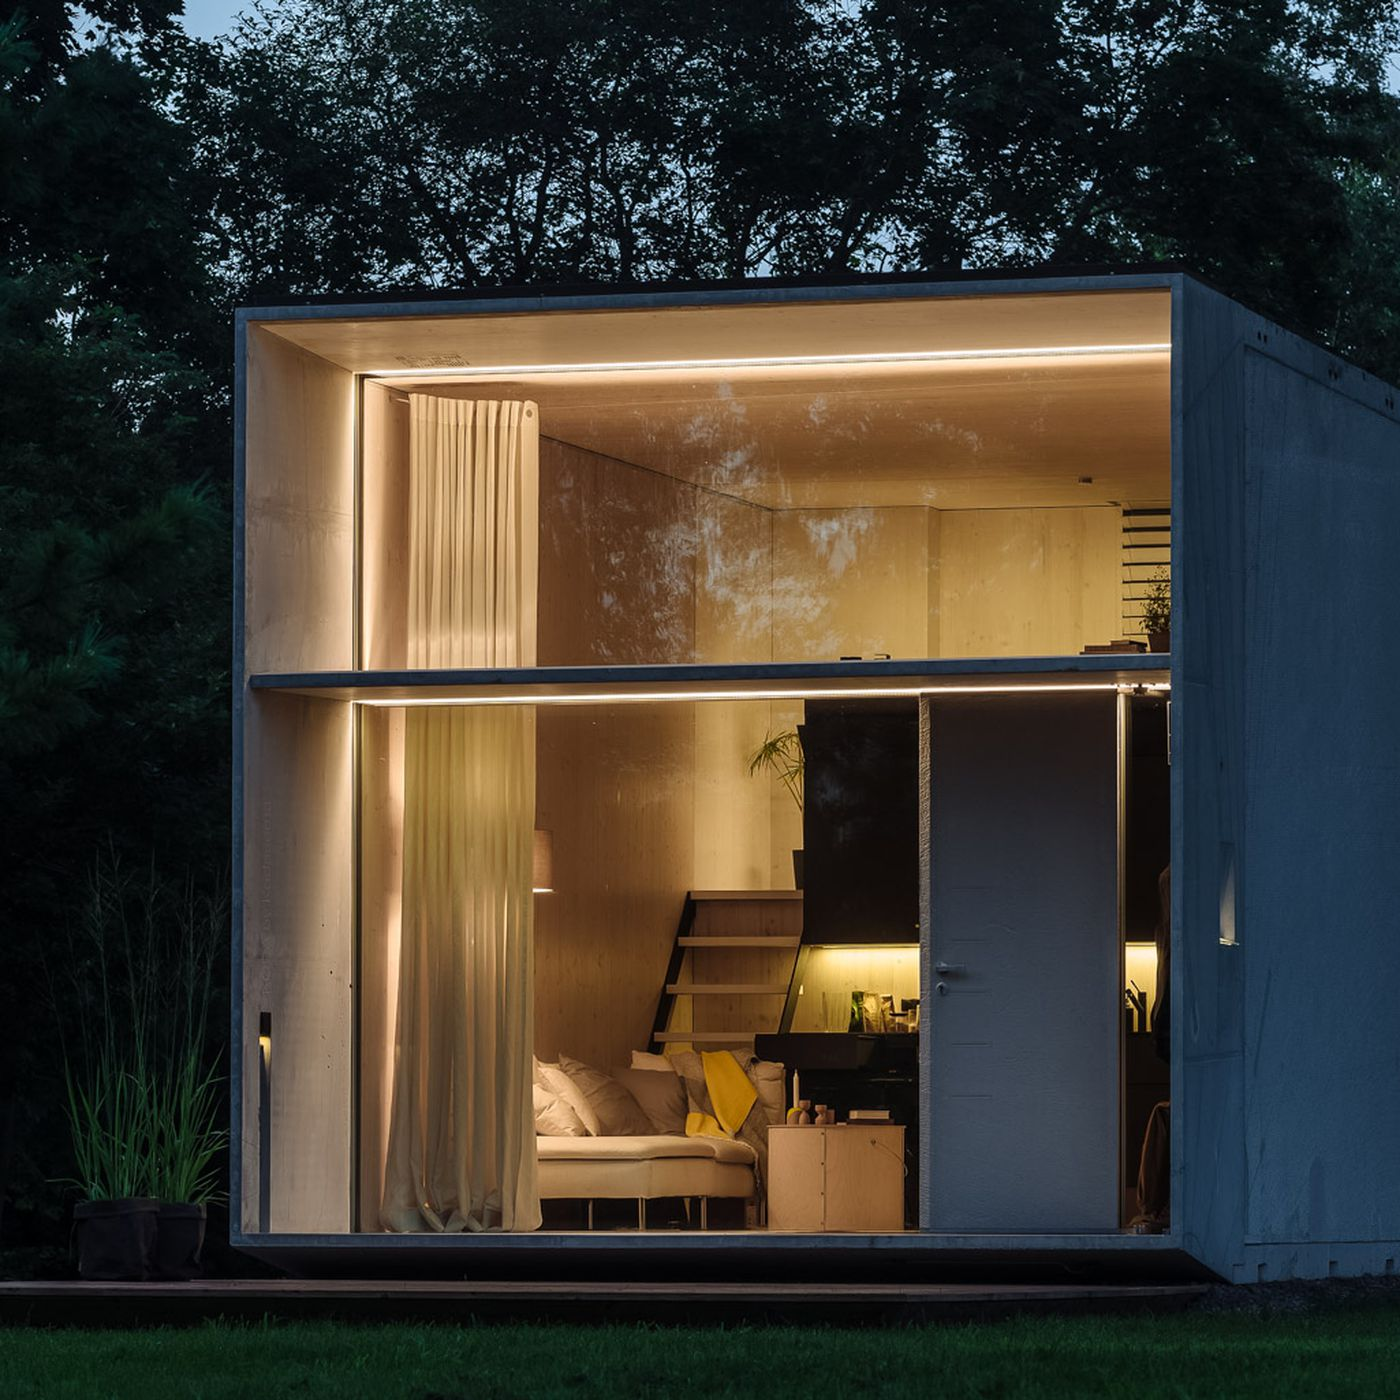 Solar Powered Prefab Tiny House Will Do It All For 125k Curbed